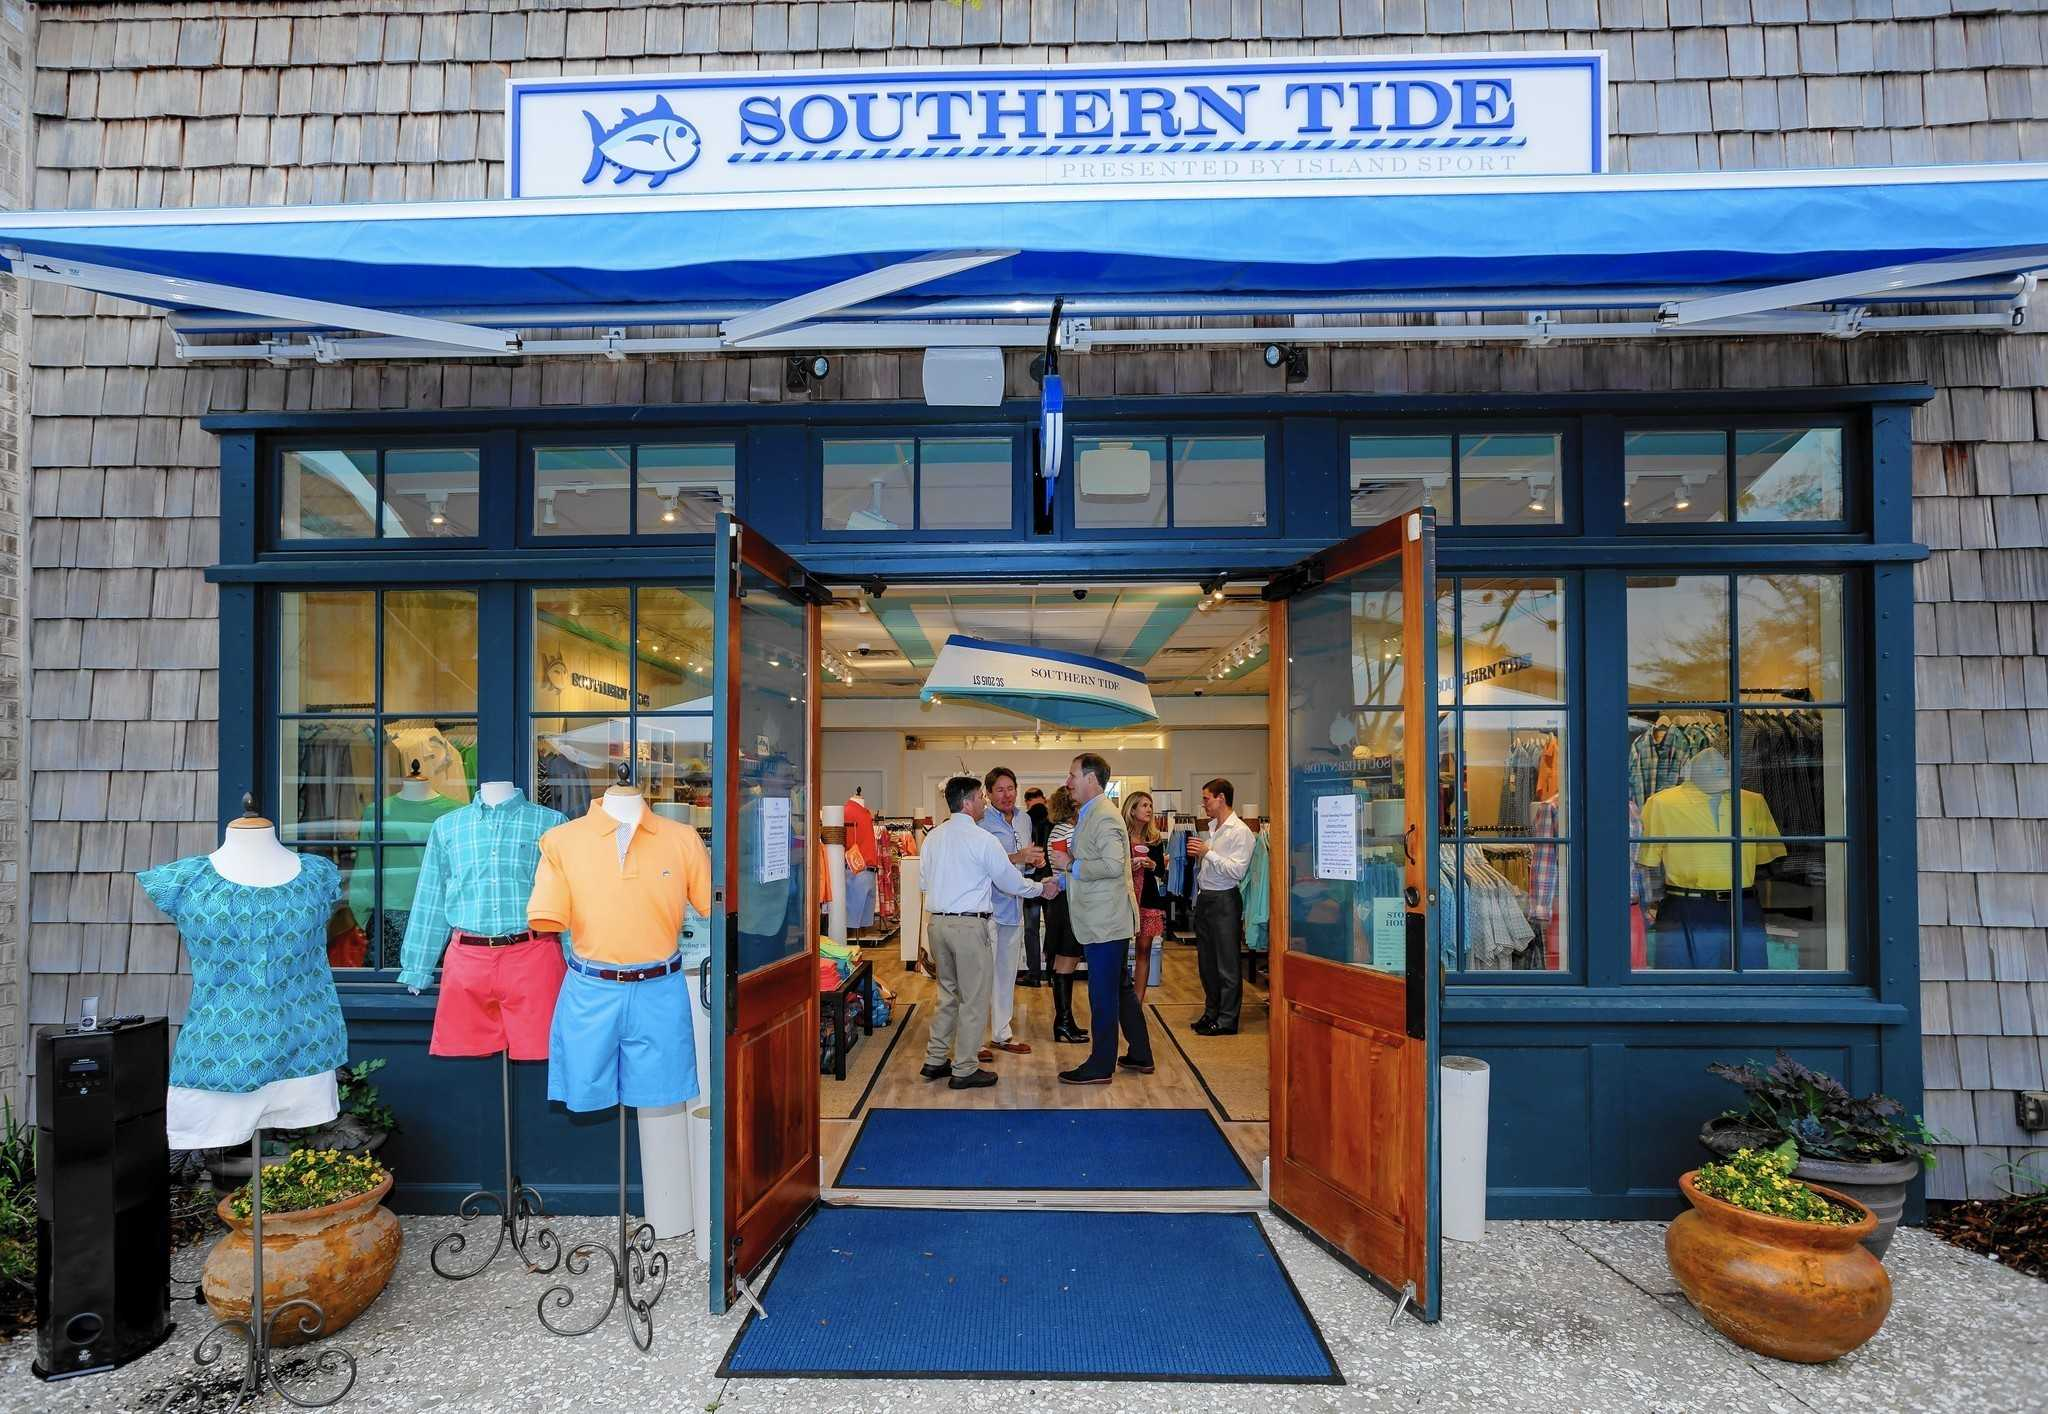 SHOPPING SOUTHERN: Shoppers browse Southern Tide's clothes, located near Hotel Indigo.